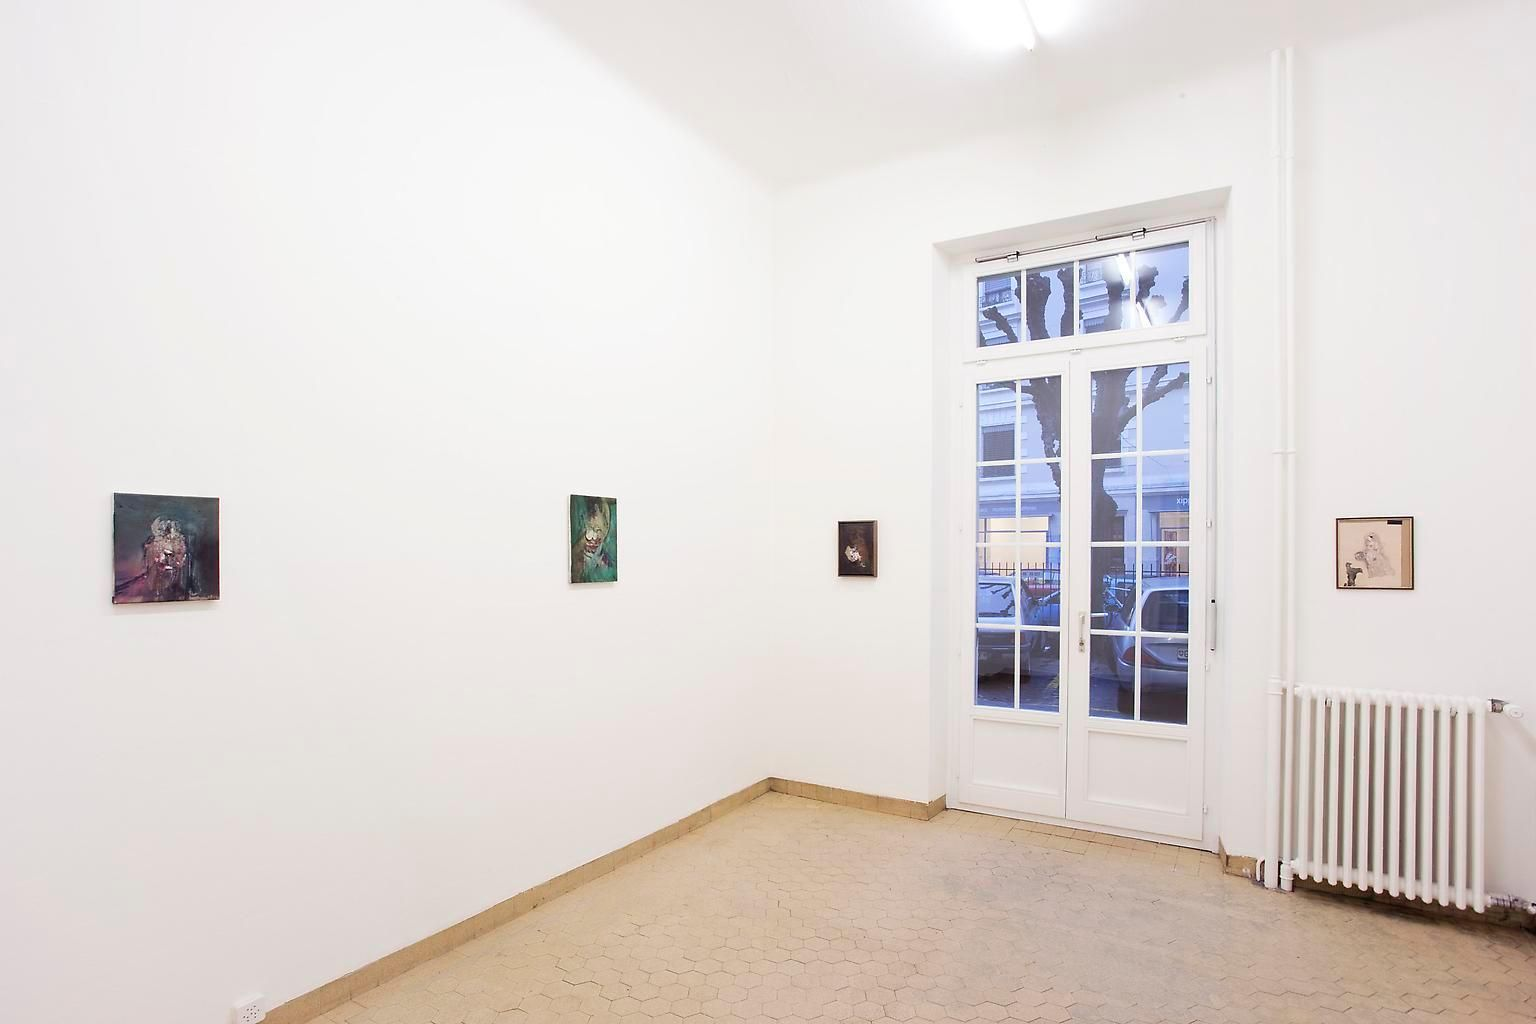 Installation view, Ross Chisholm, The Garden, Marc Jancou, Geneva, January 19 - March 10, 2012